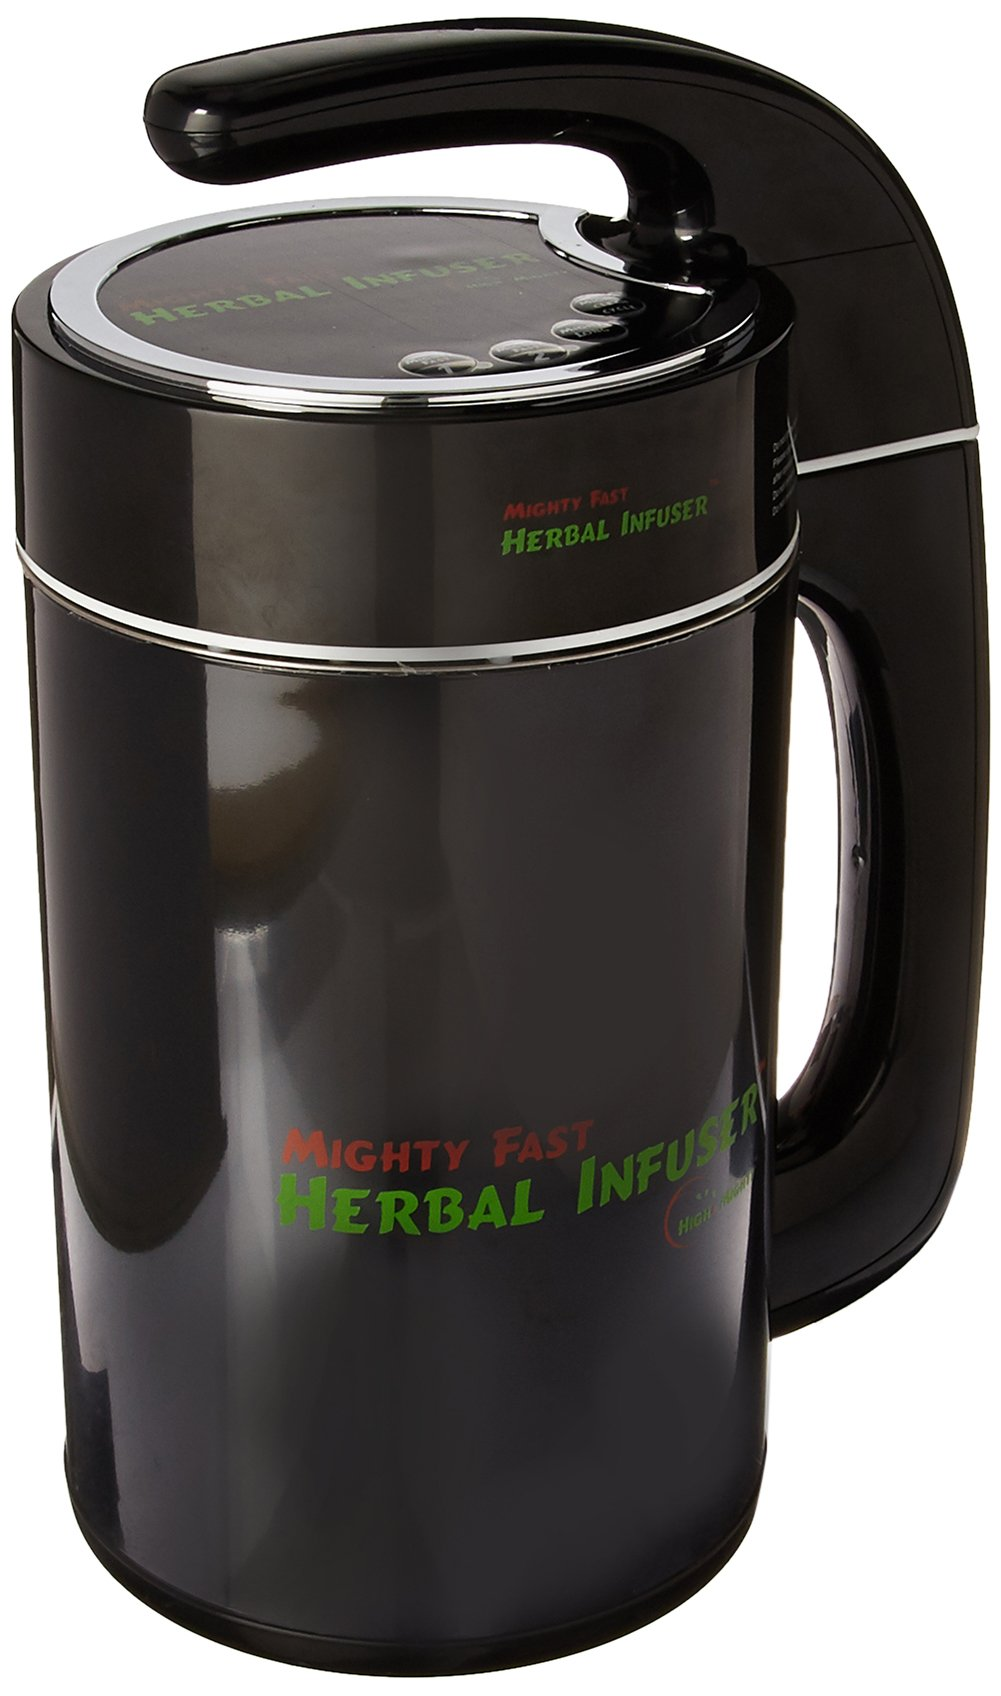 Mighty Fast Herbal Infuser